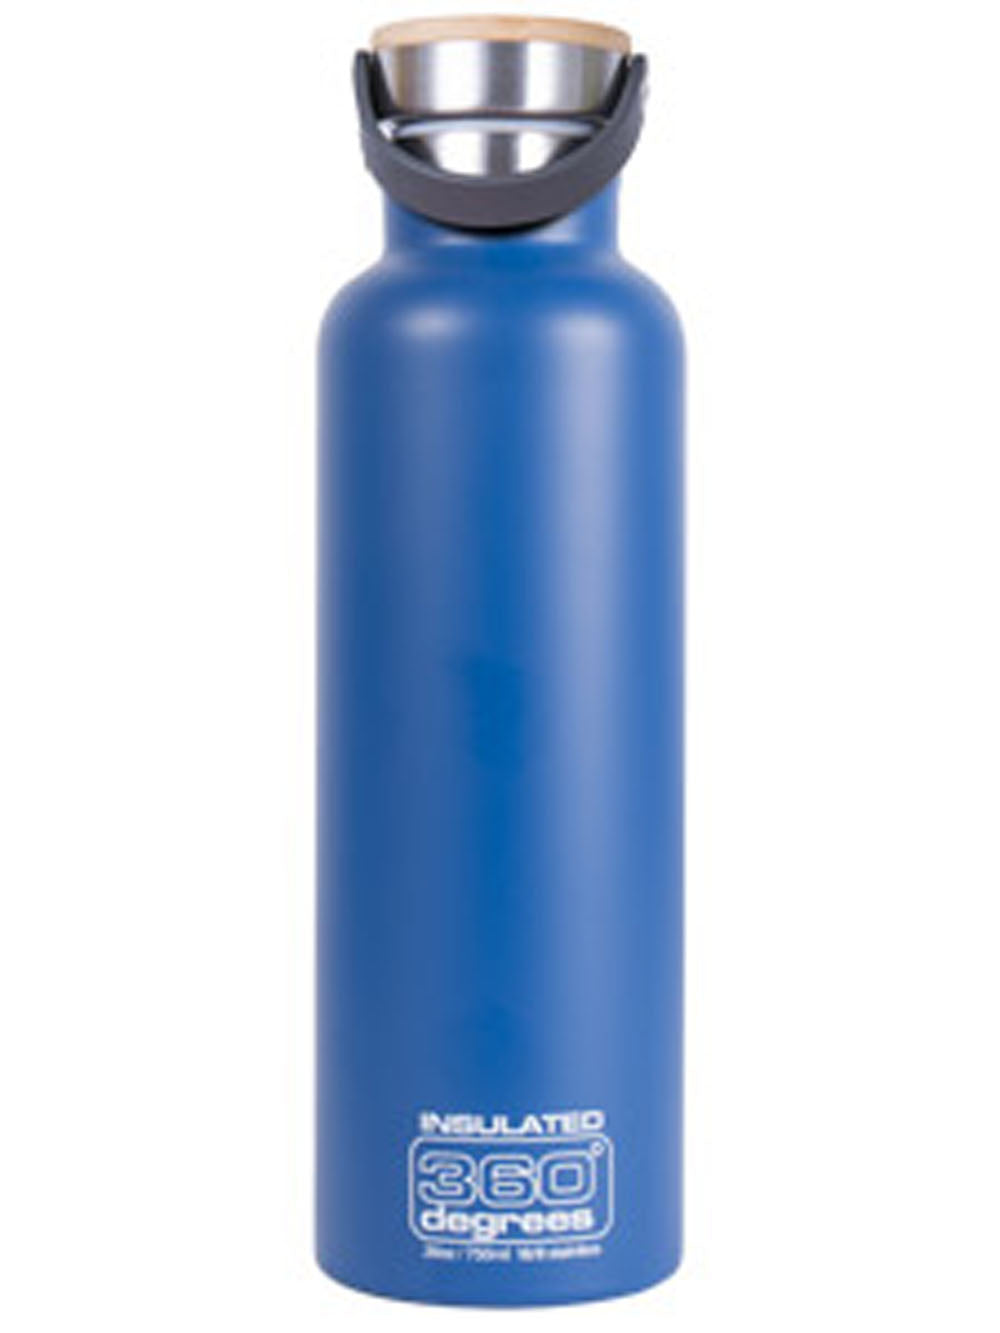 Vacuum Insul Bottle - 750ml - thefrontier